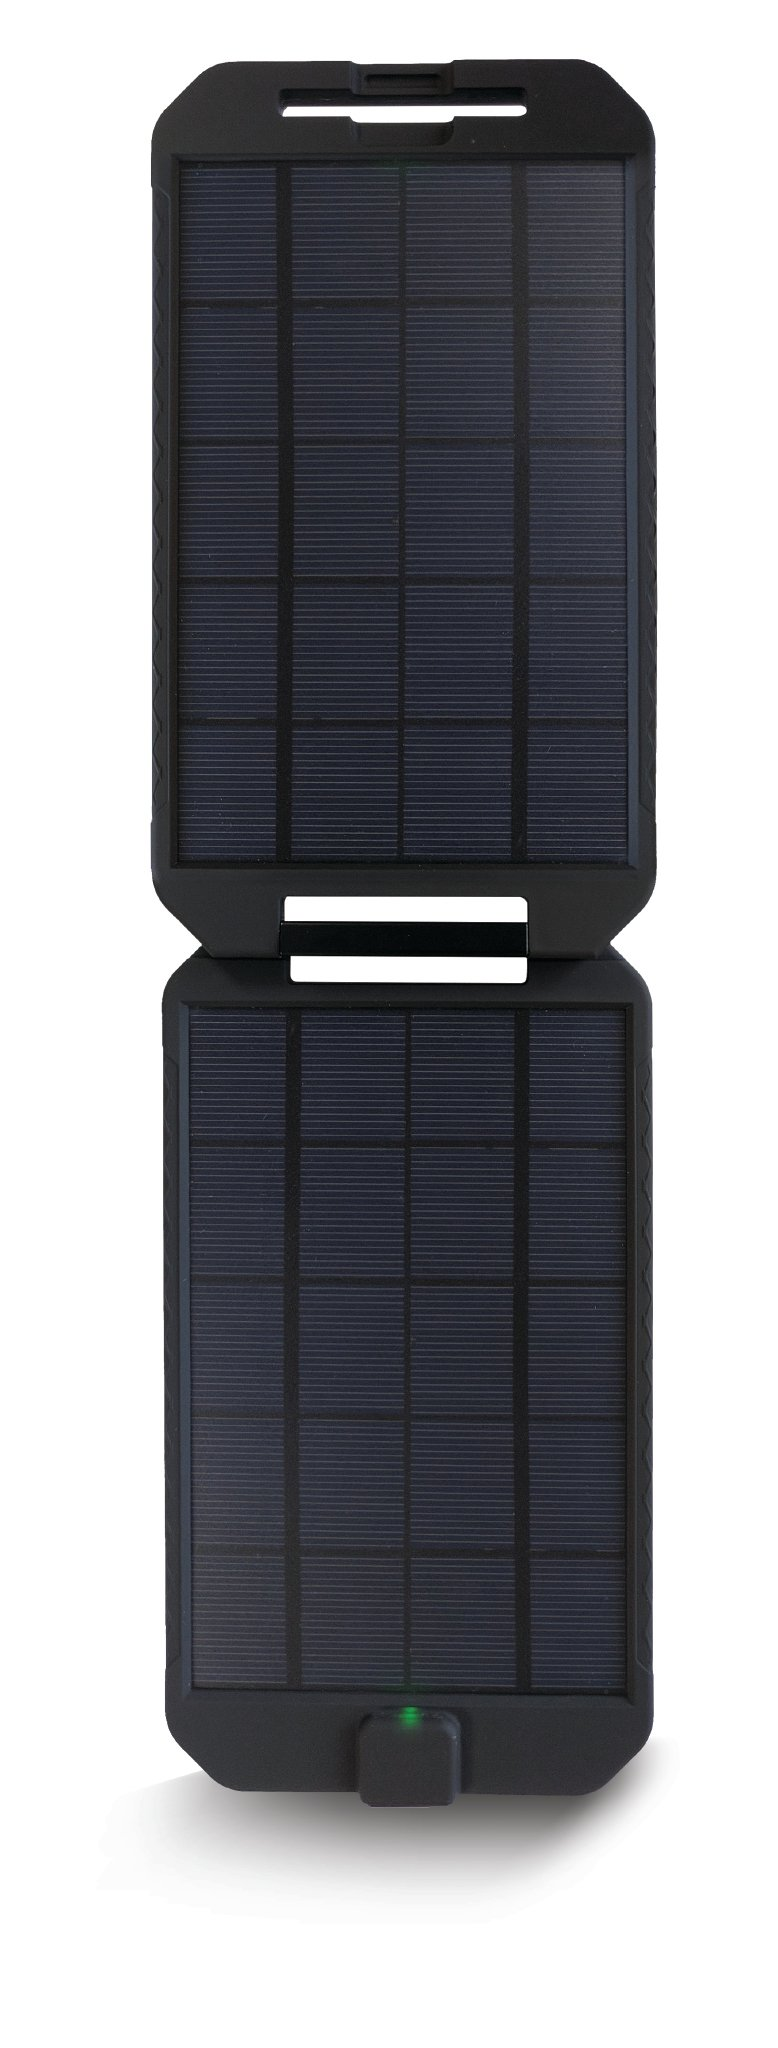 Powertraveller Extreme Solar New, Black by Powertraveller